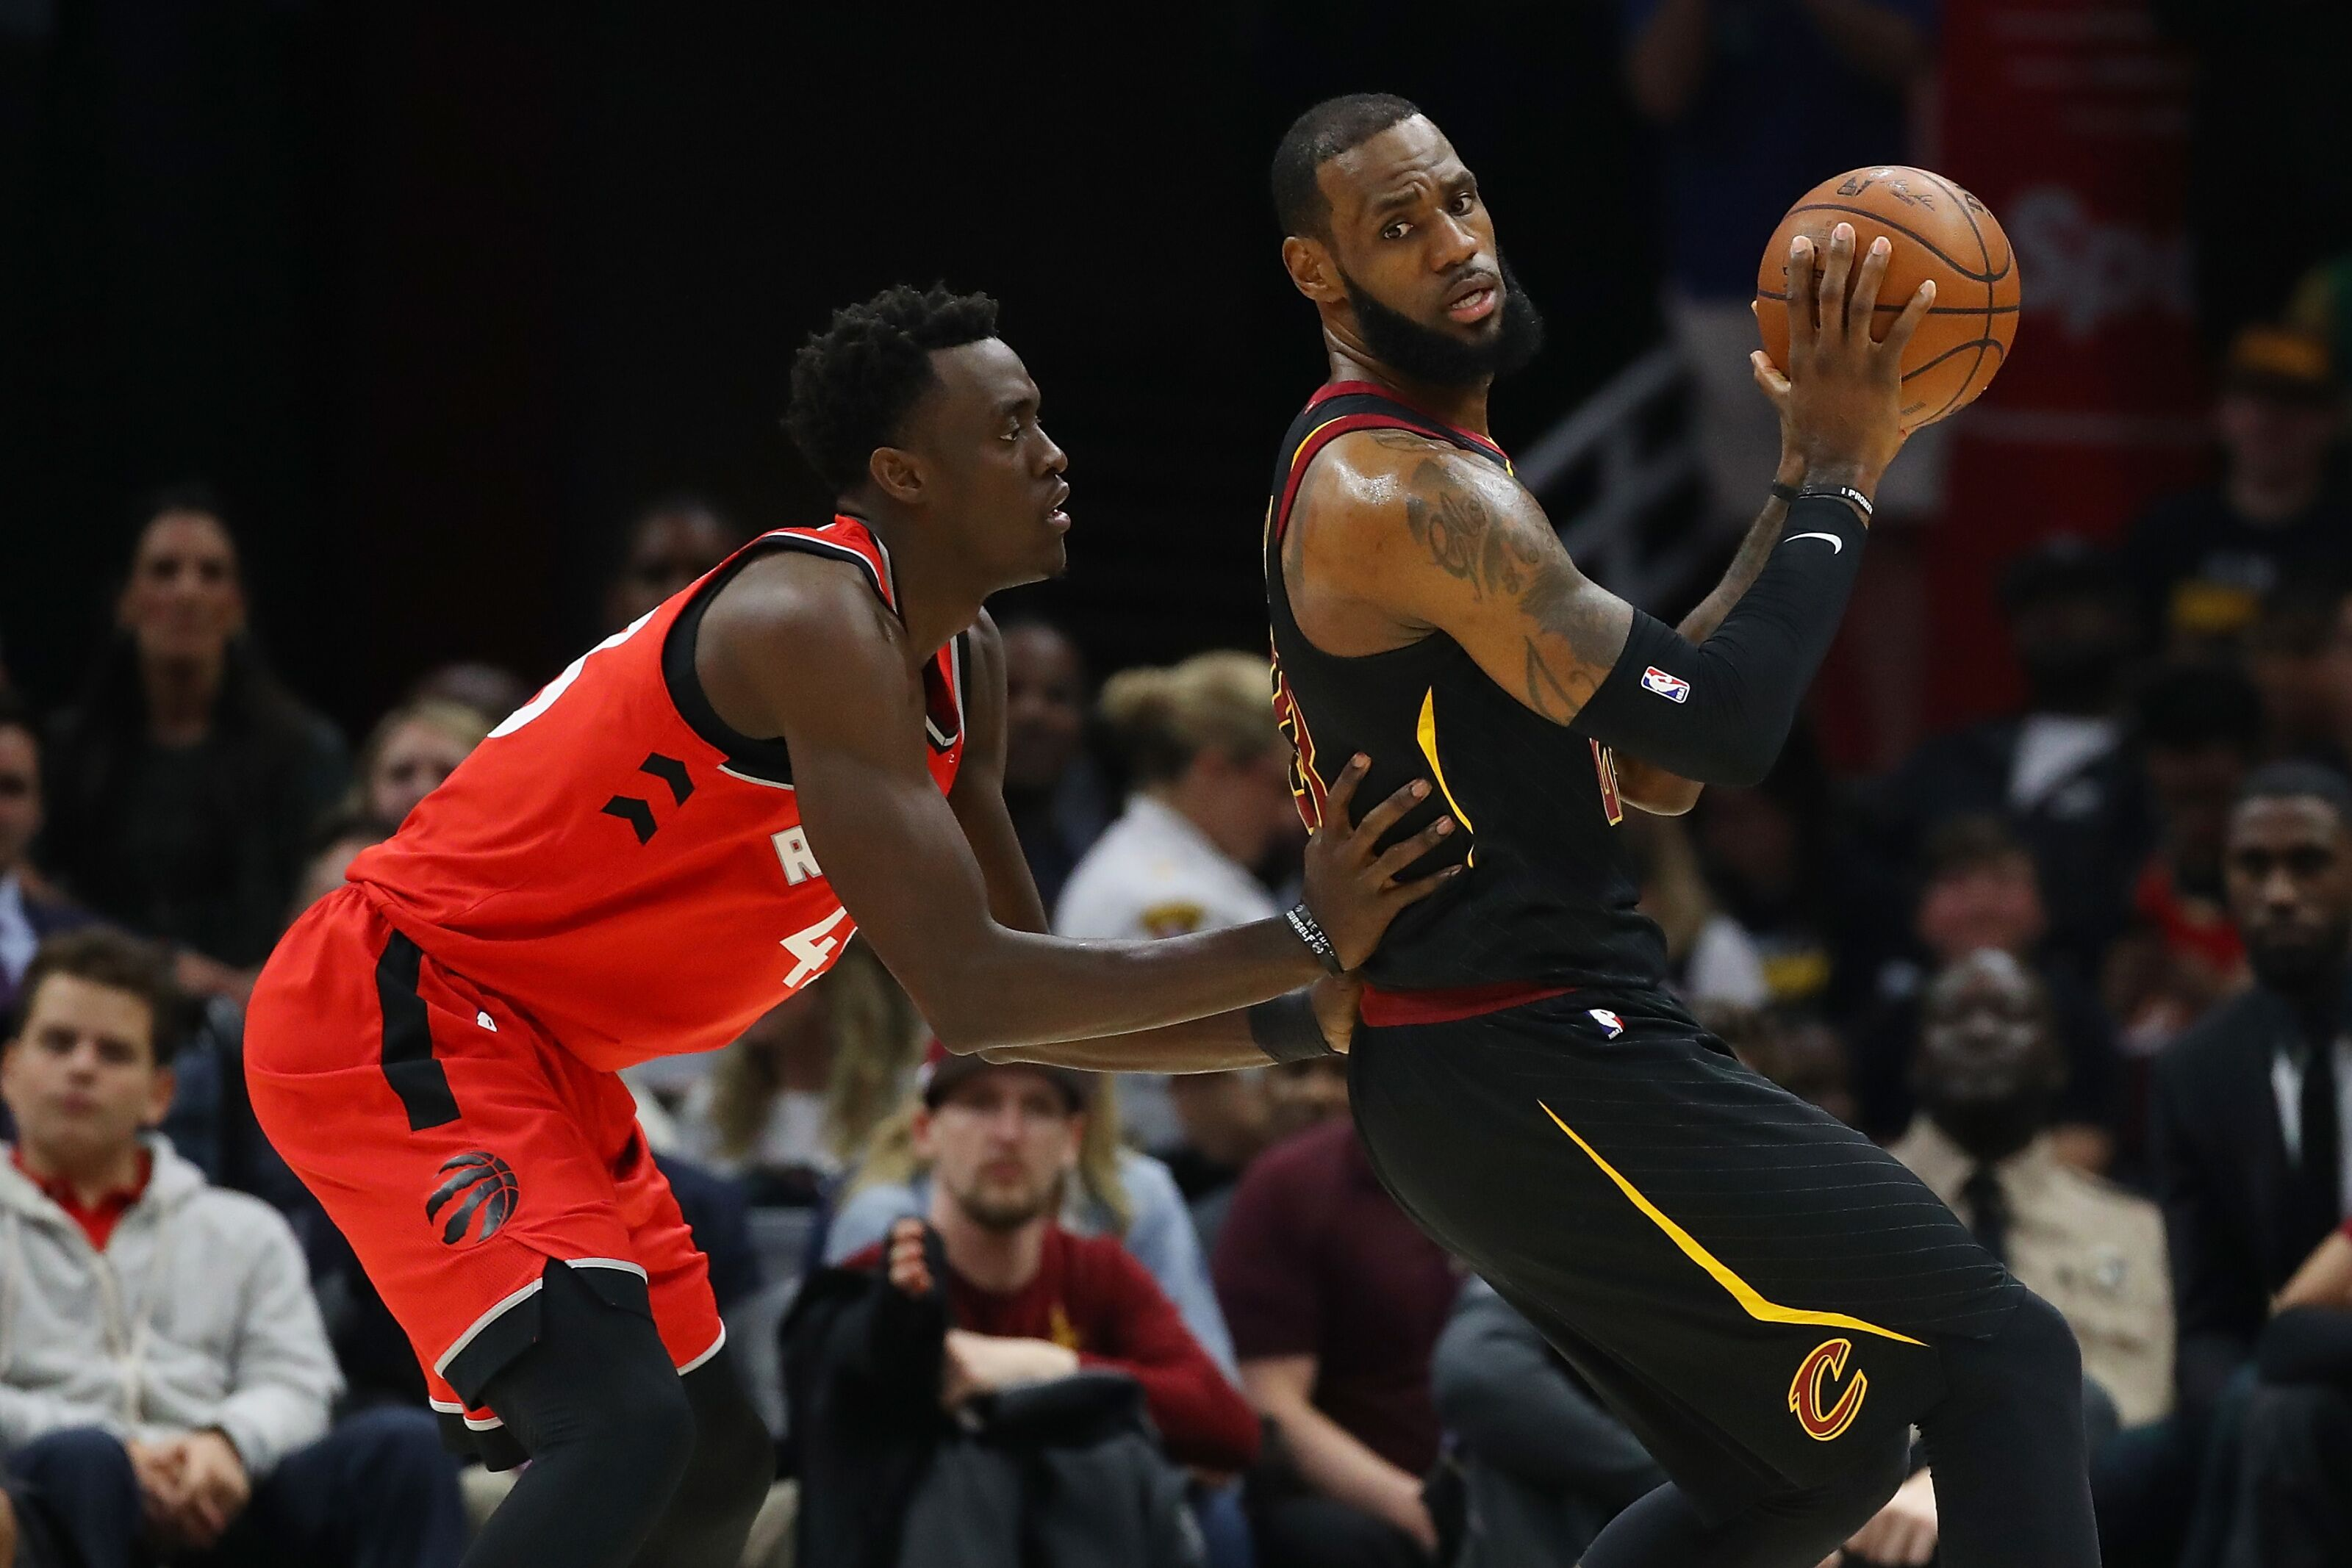 Toronto Raptors: Can Pascal Siakam live up to over sized expectations?